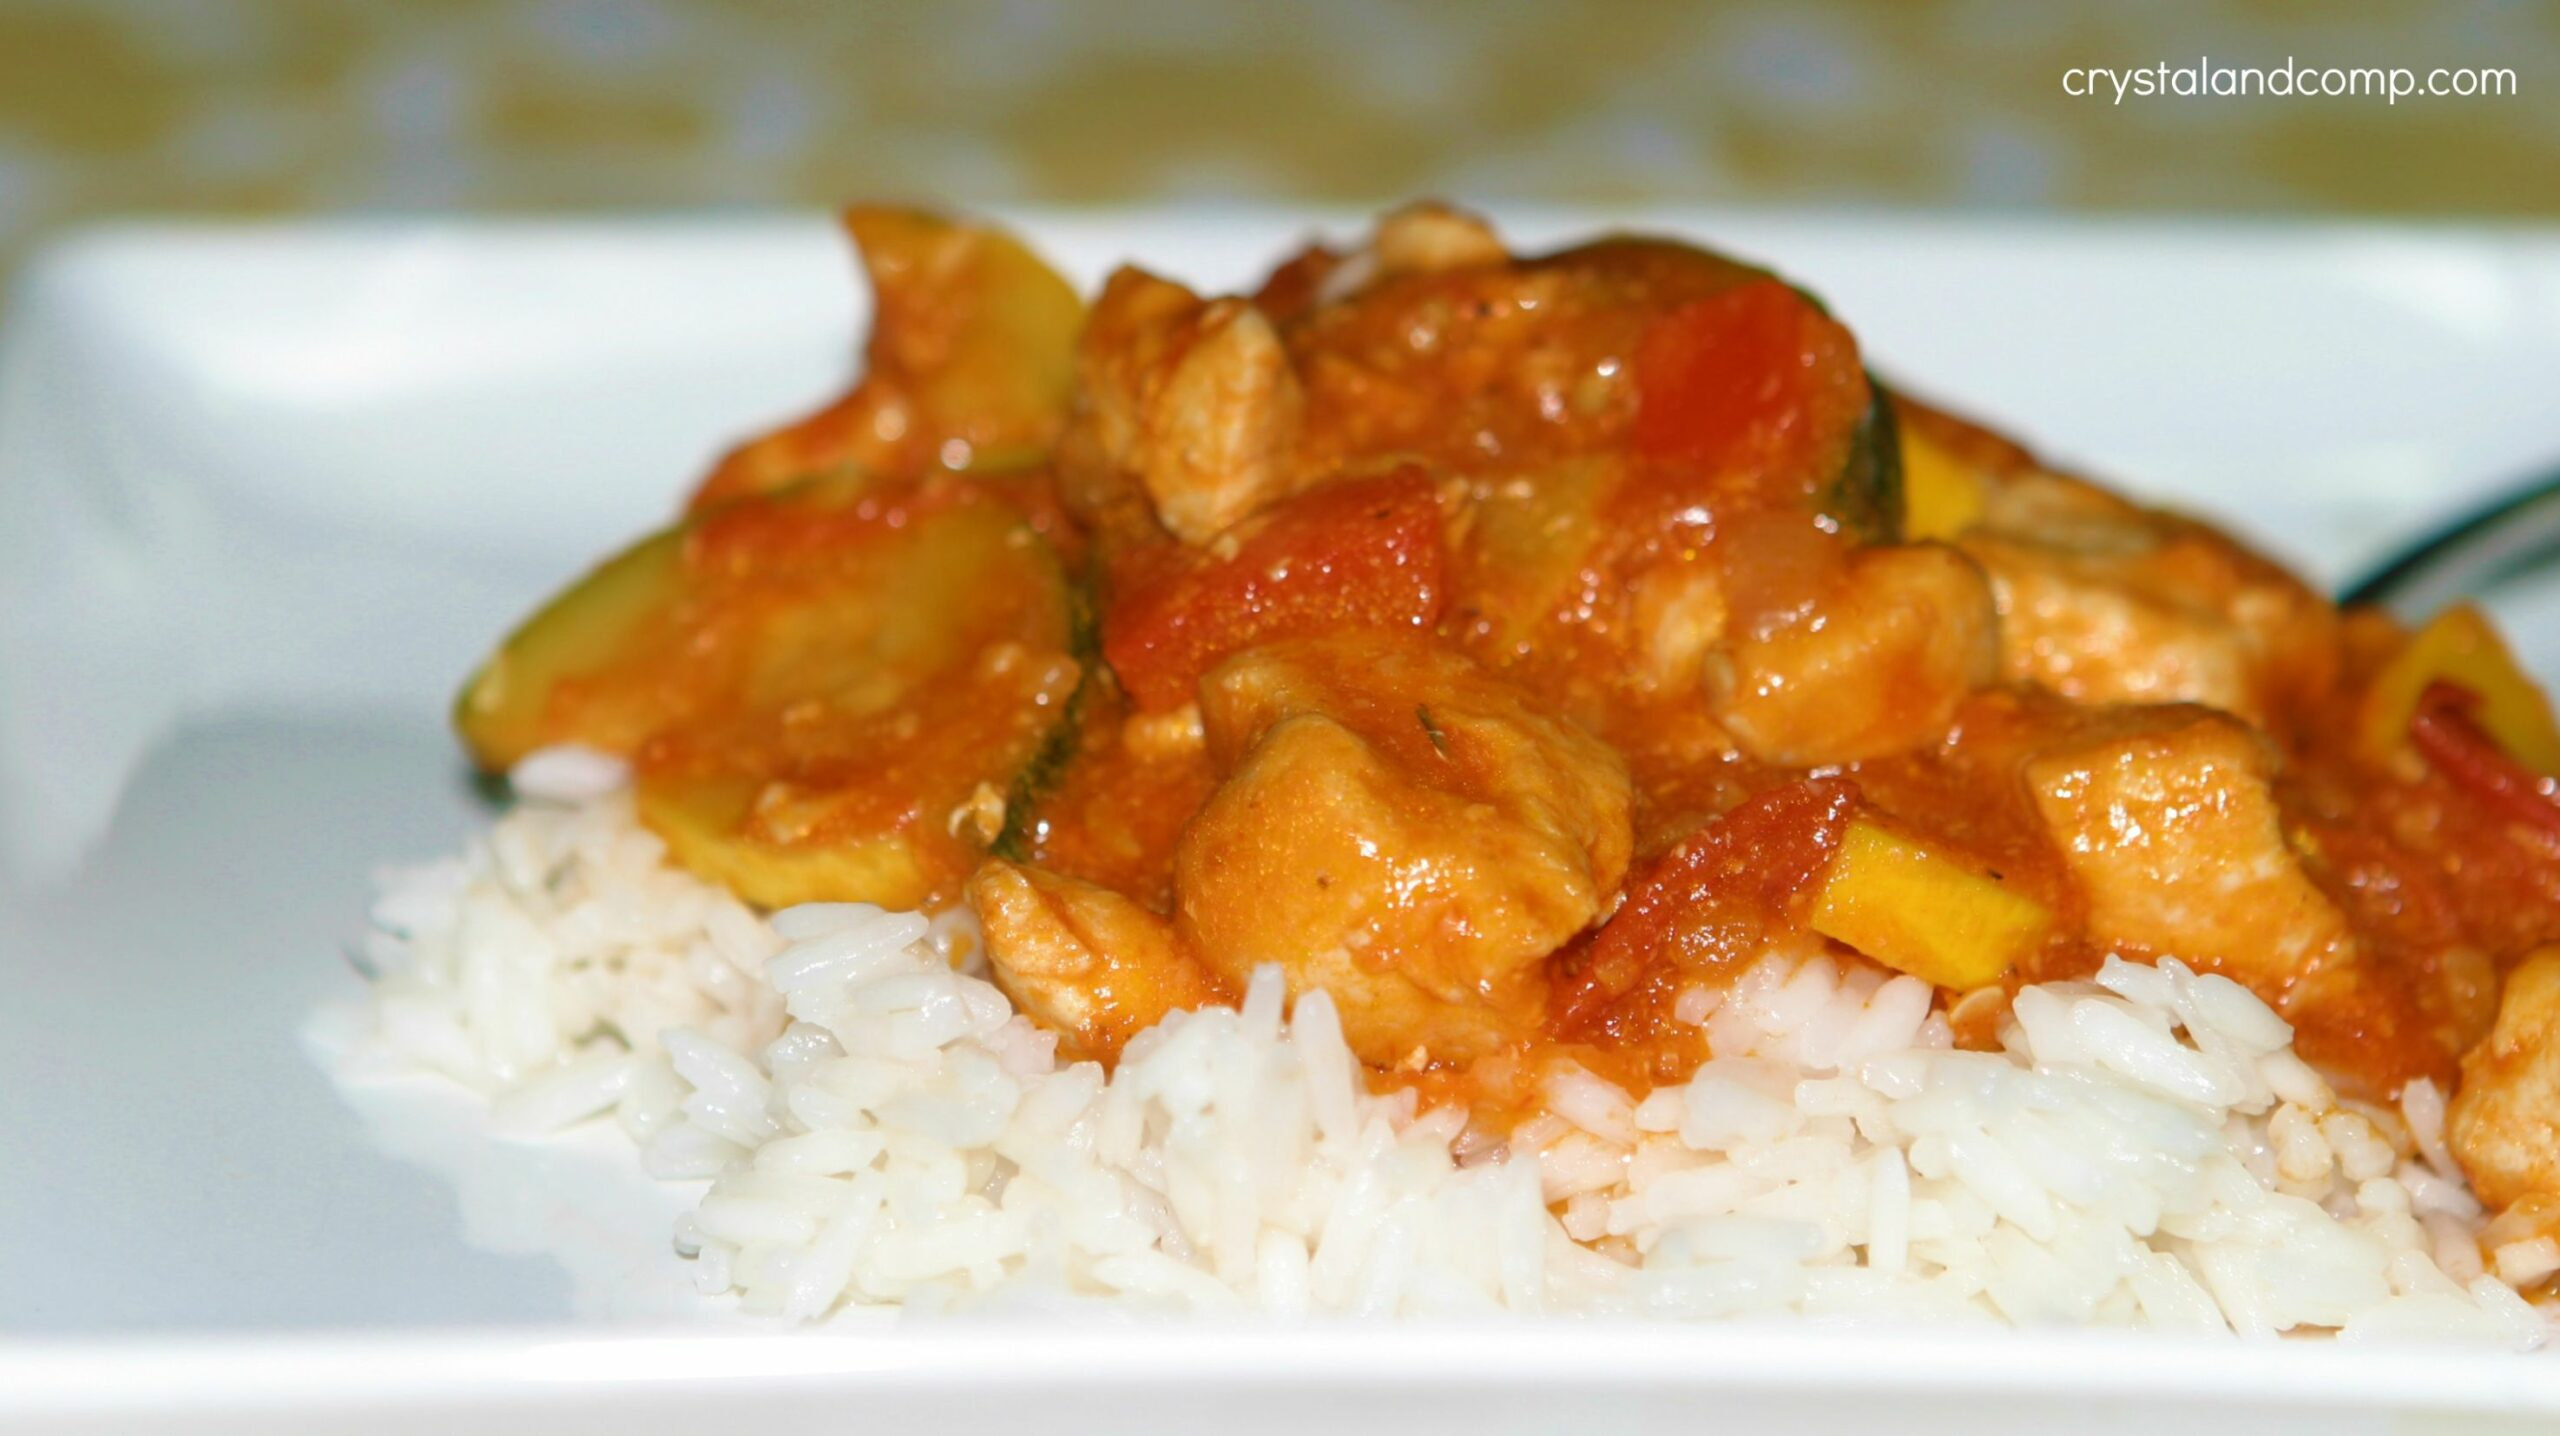 Easy Recipes: Chicken and Summer Squash over Rice - Recipes Over Rice